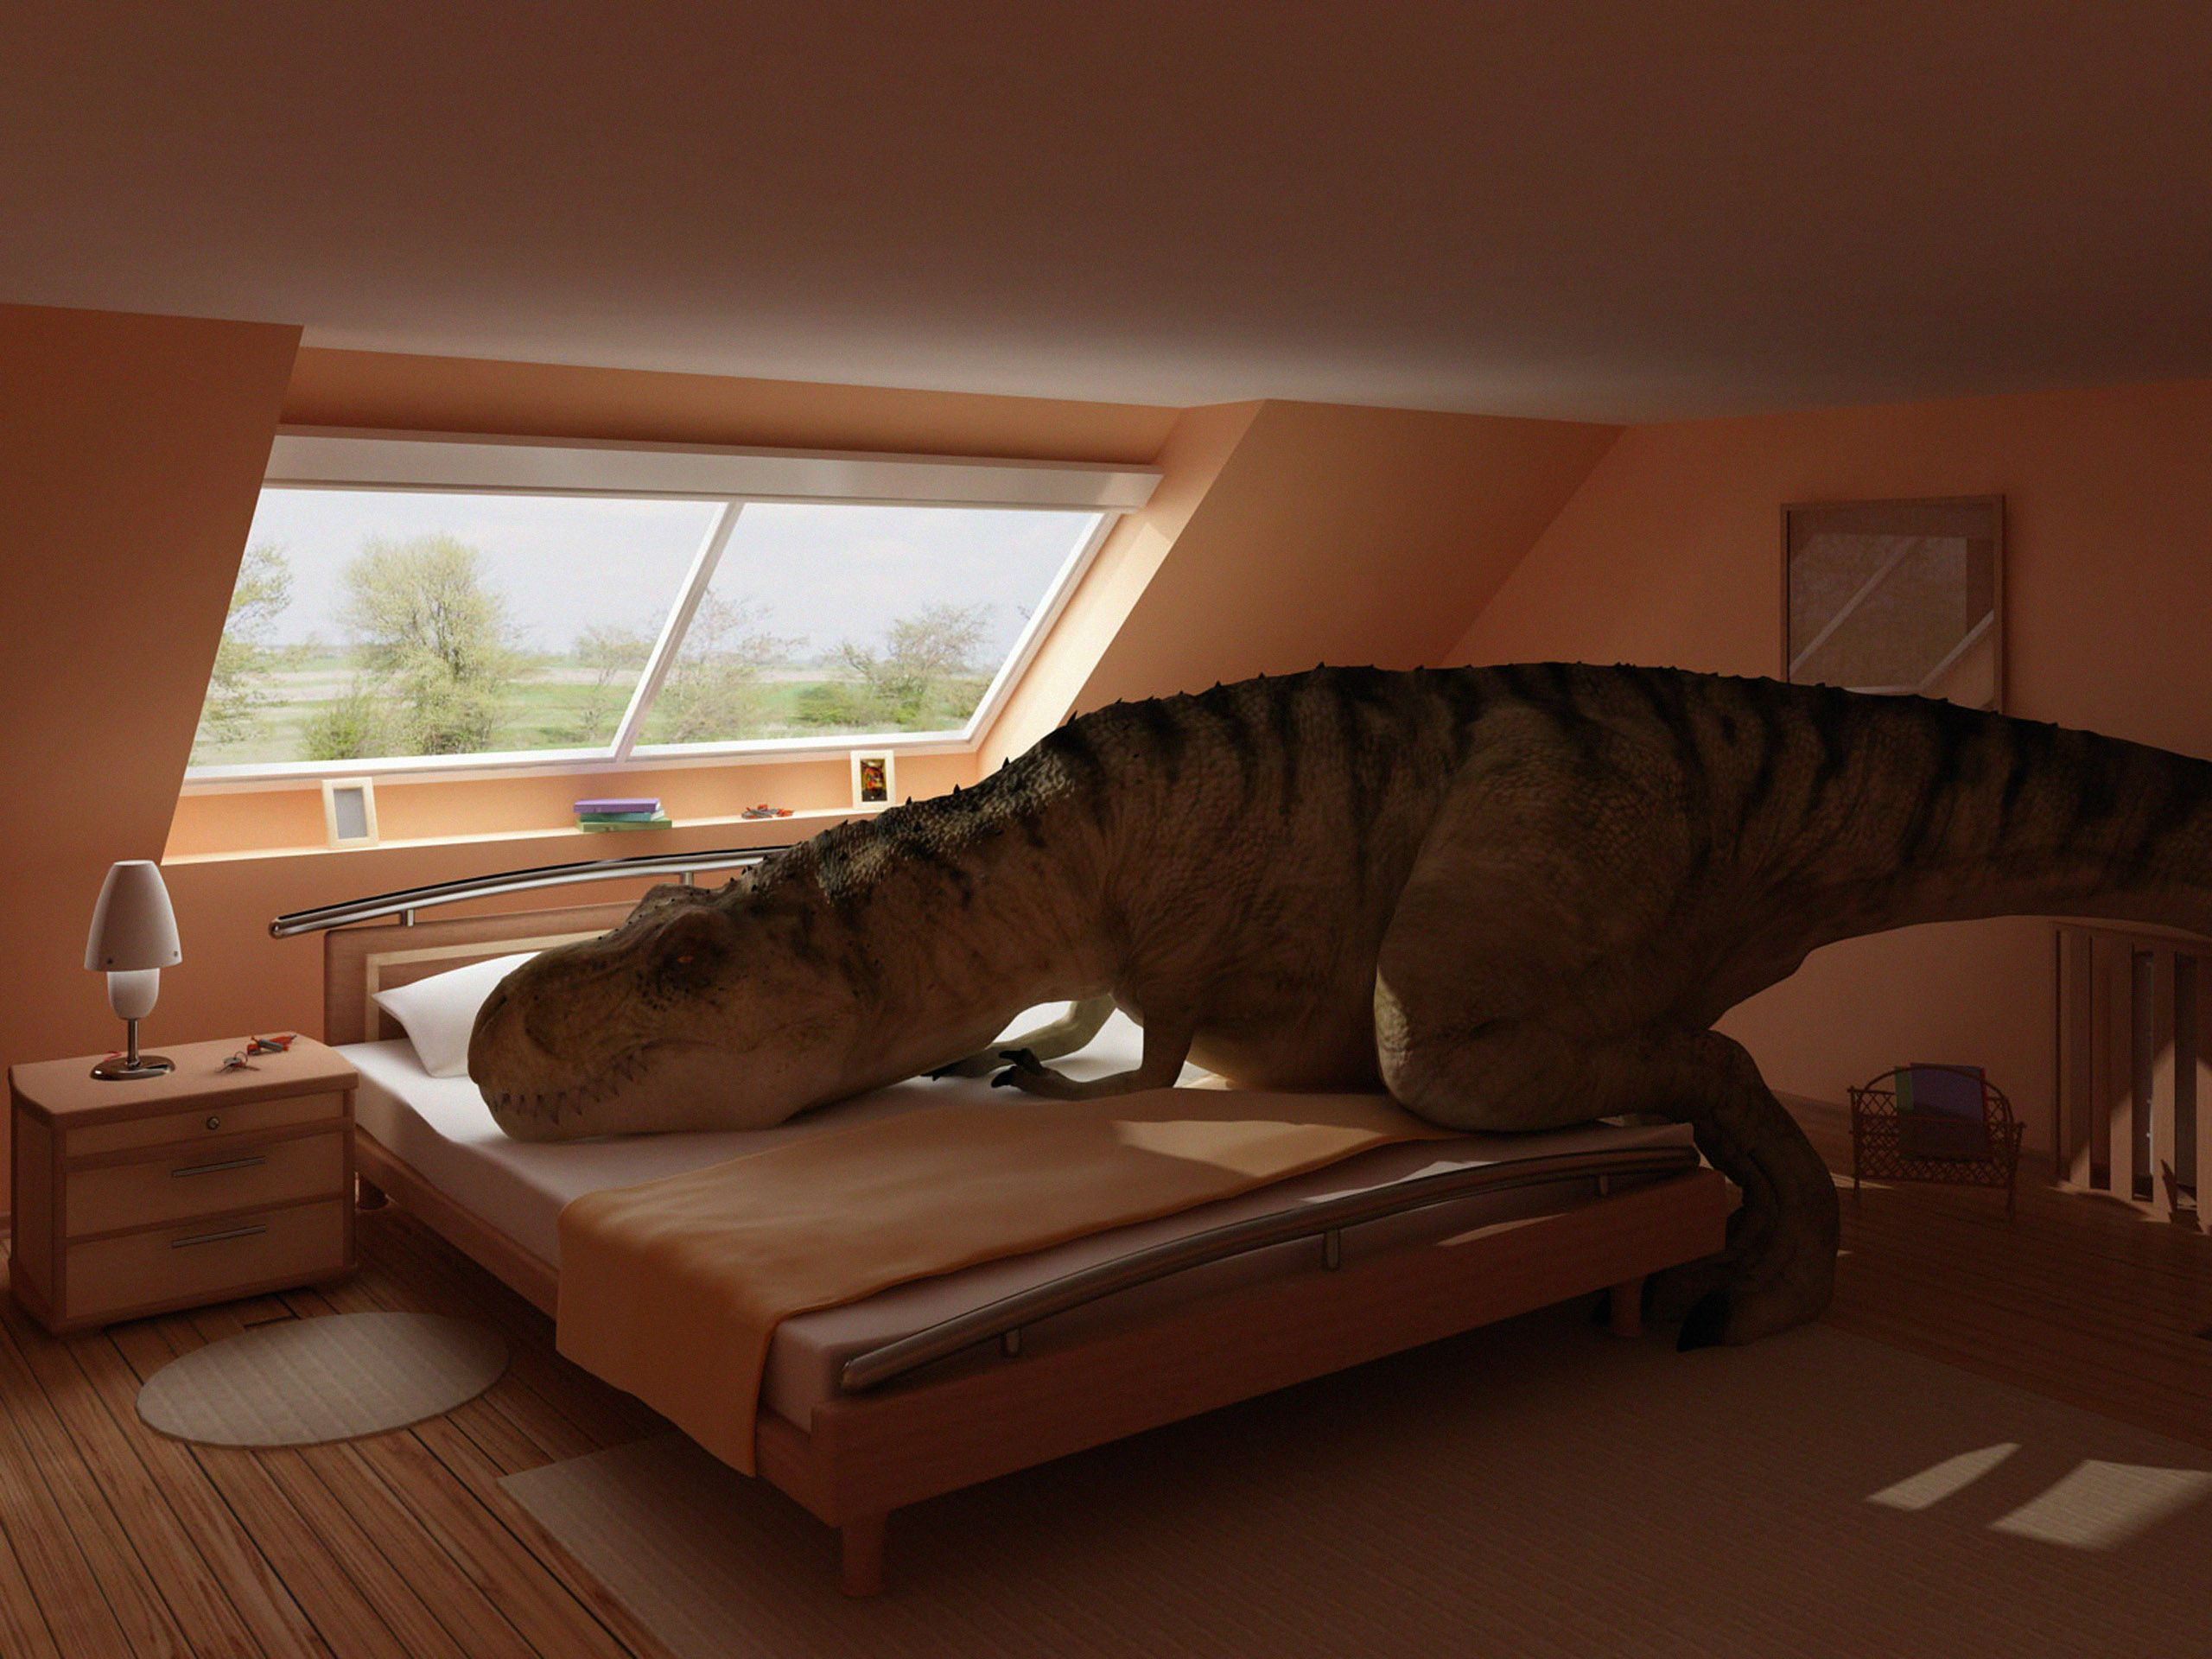 When Youre Upset, Just Imagine A T Rex Making A Bed